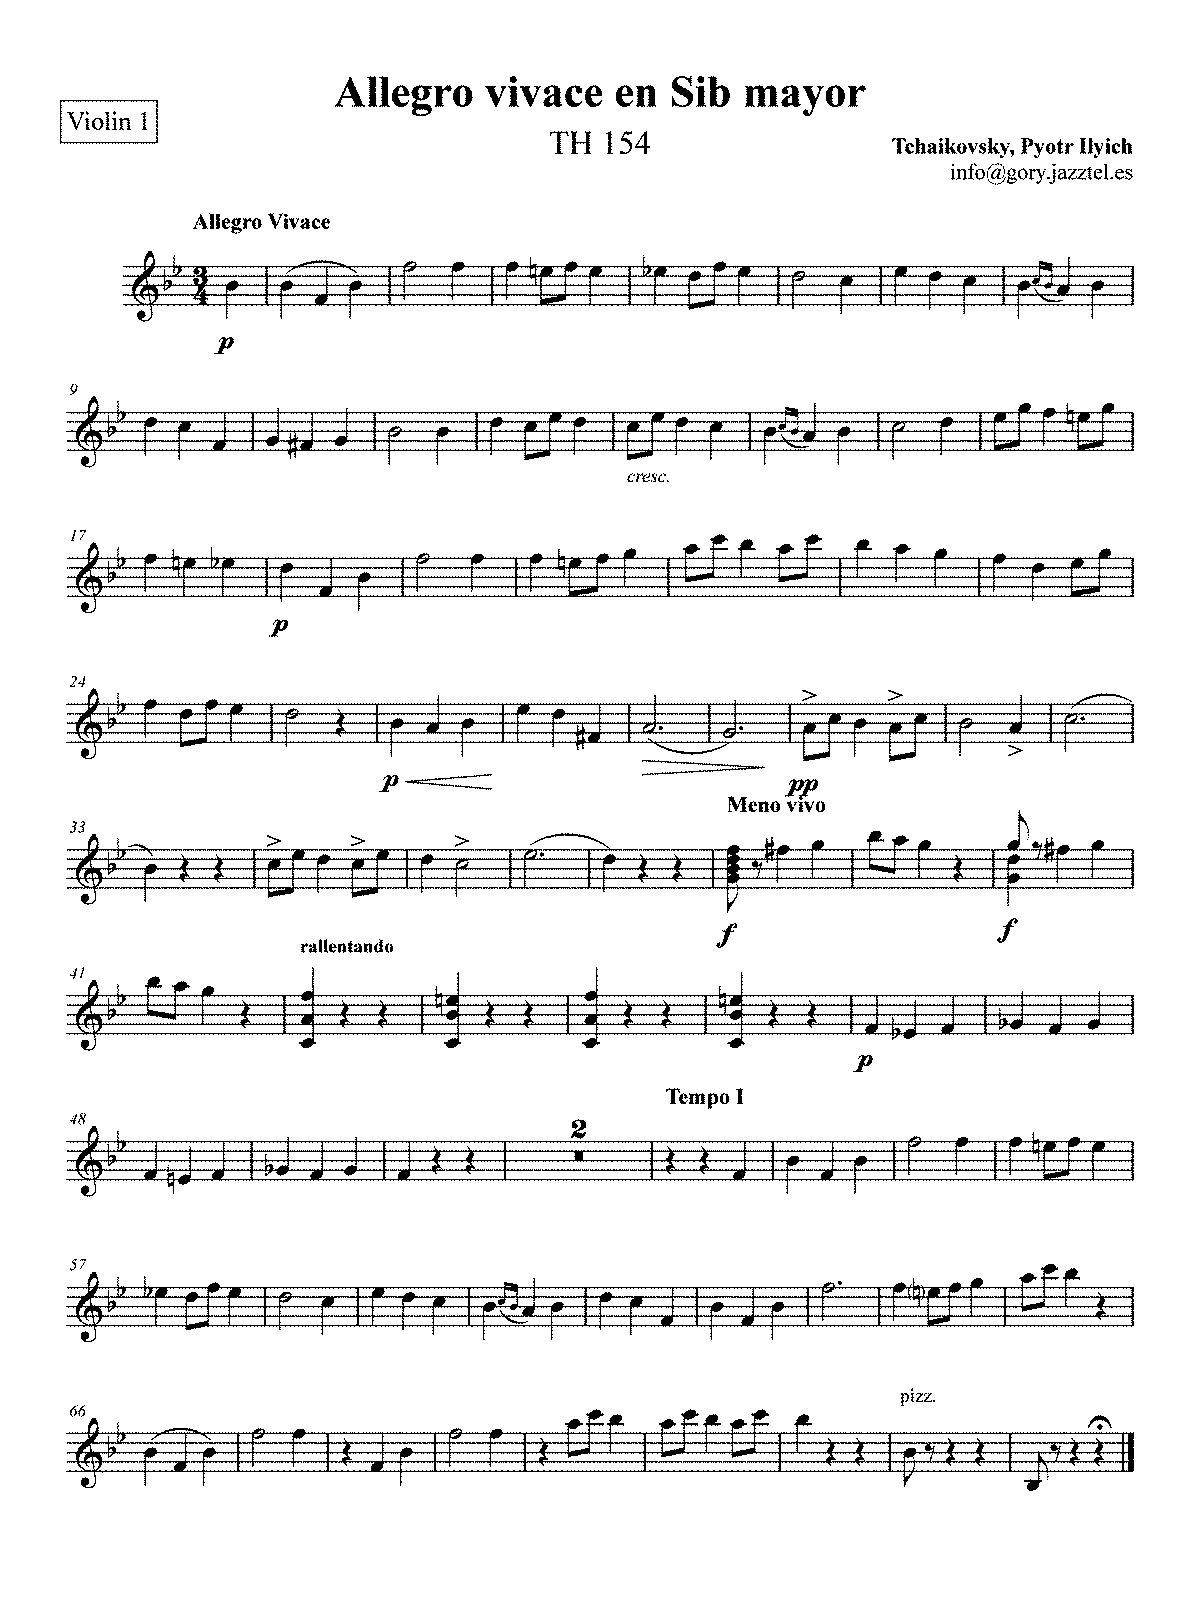 PMLP49116-Allegro vivace en Sib mayor - Violin 1.pdf